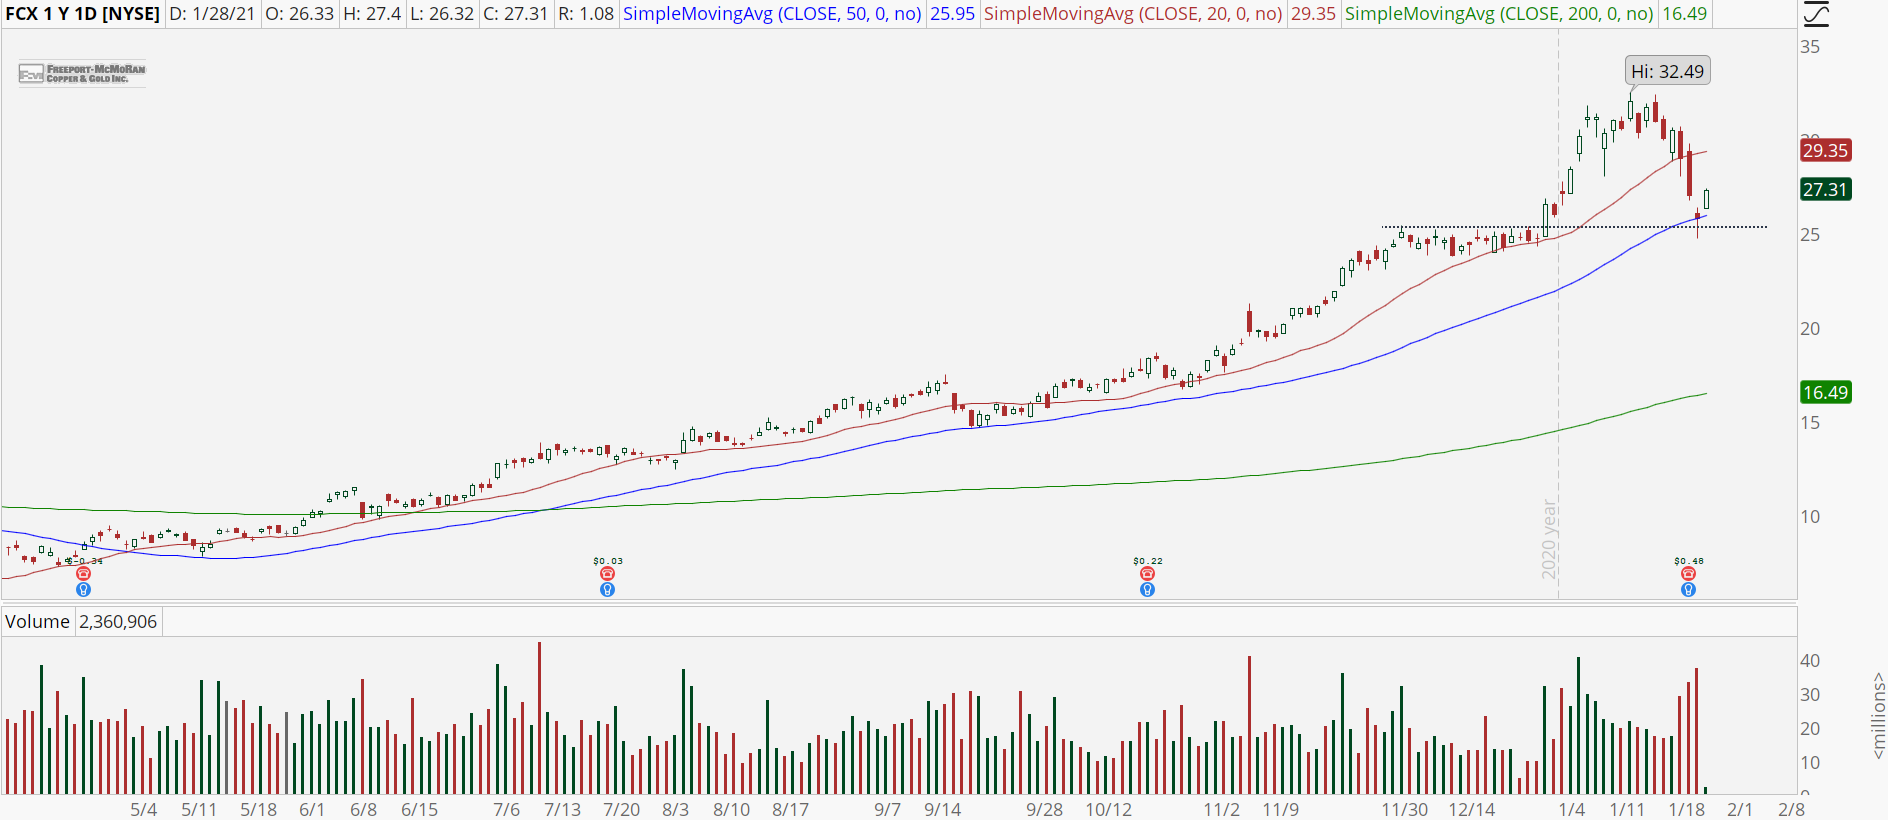 Freeport McMoran (FCX) chart with pullback to 50-day moving average